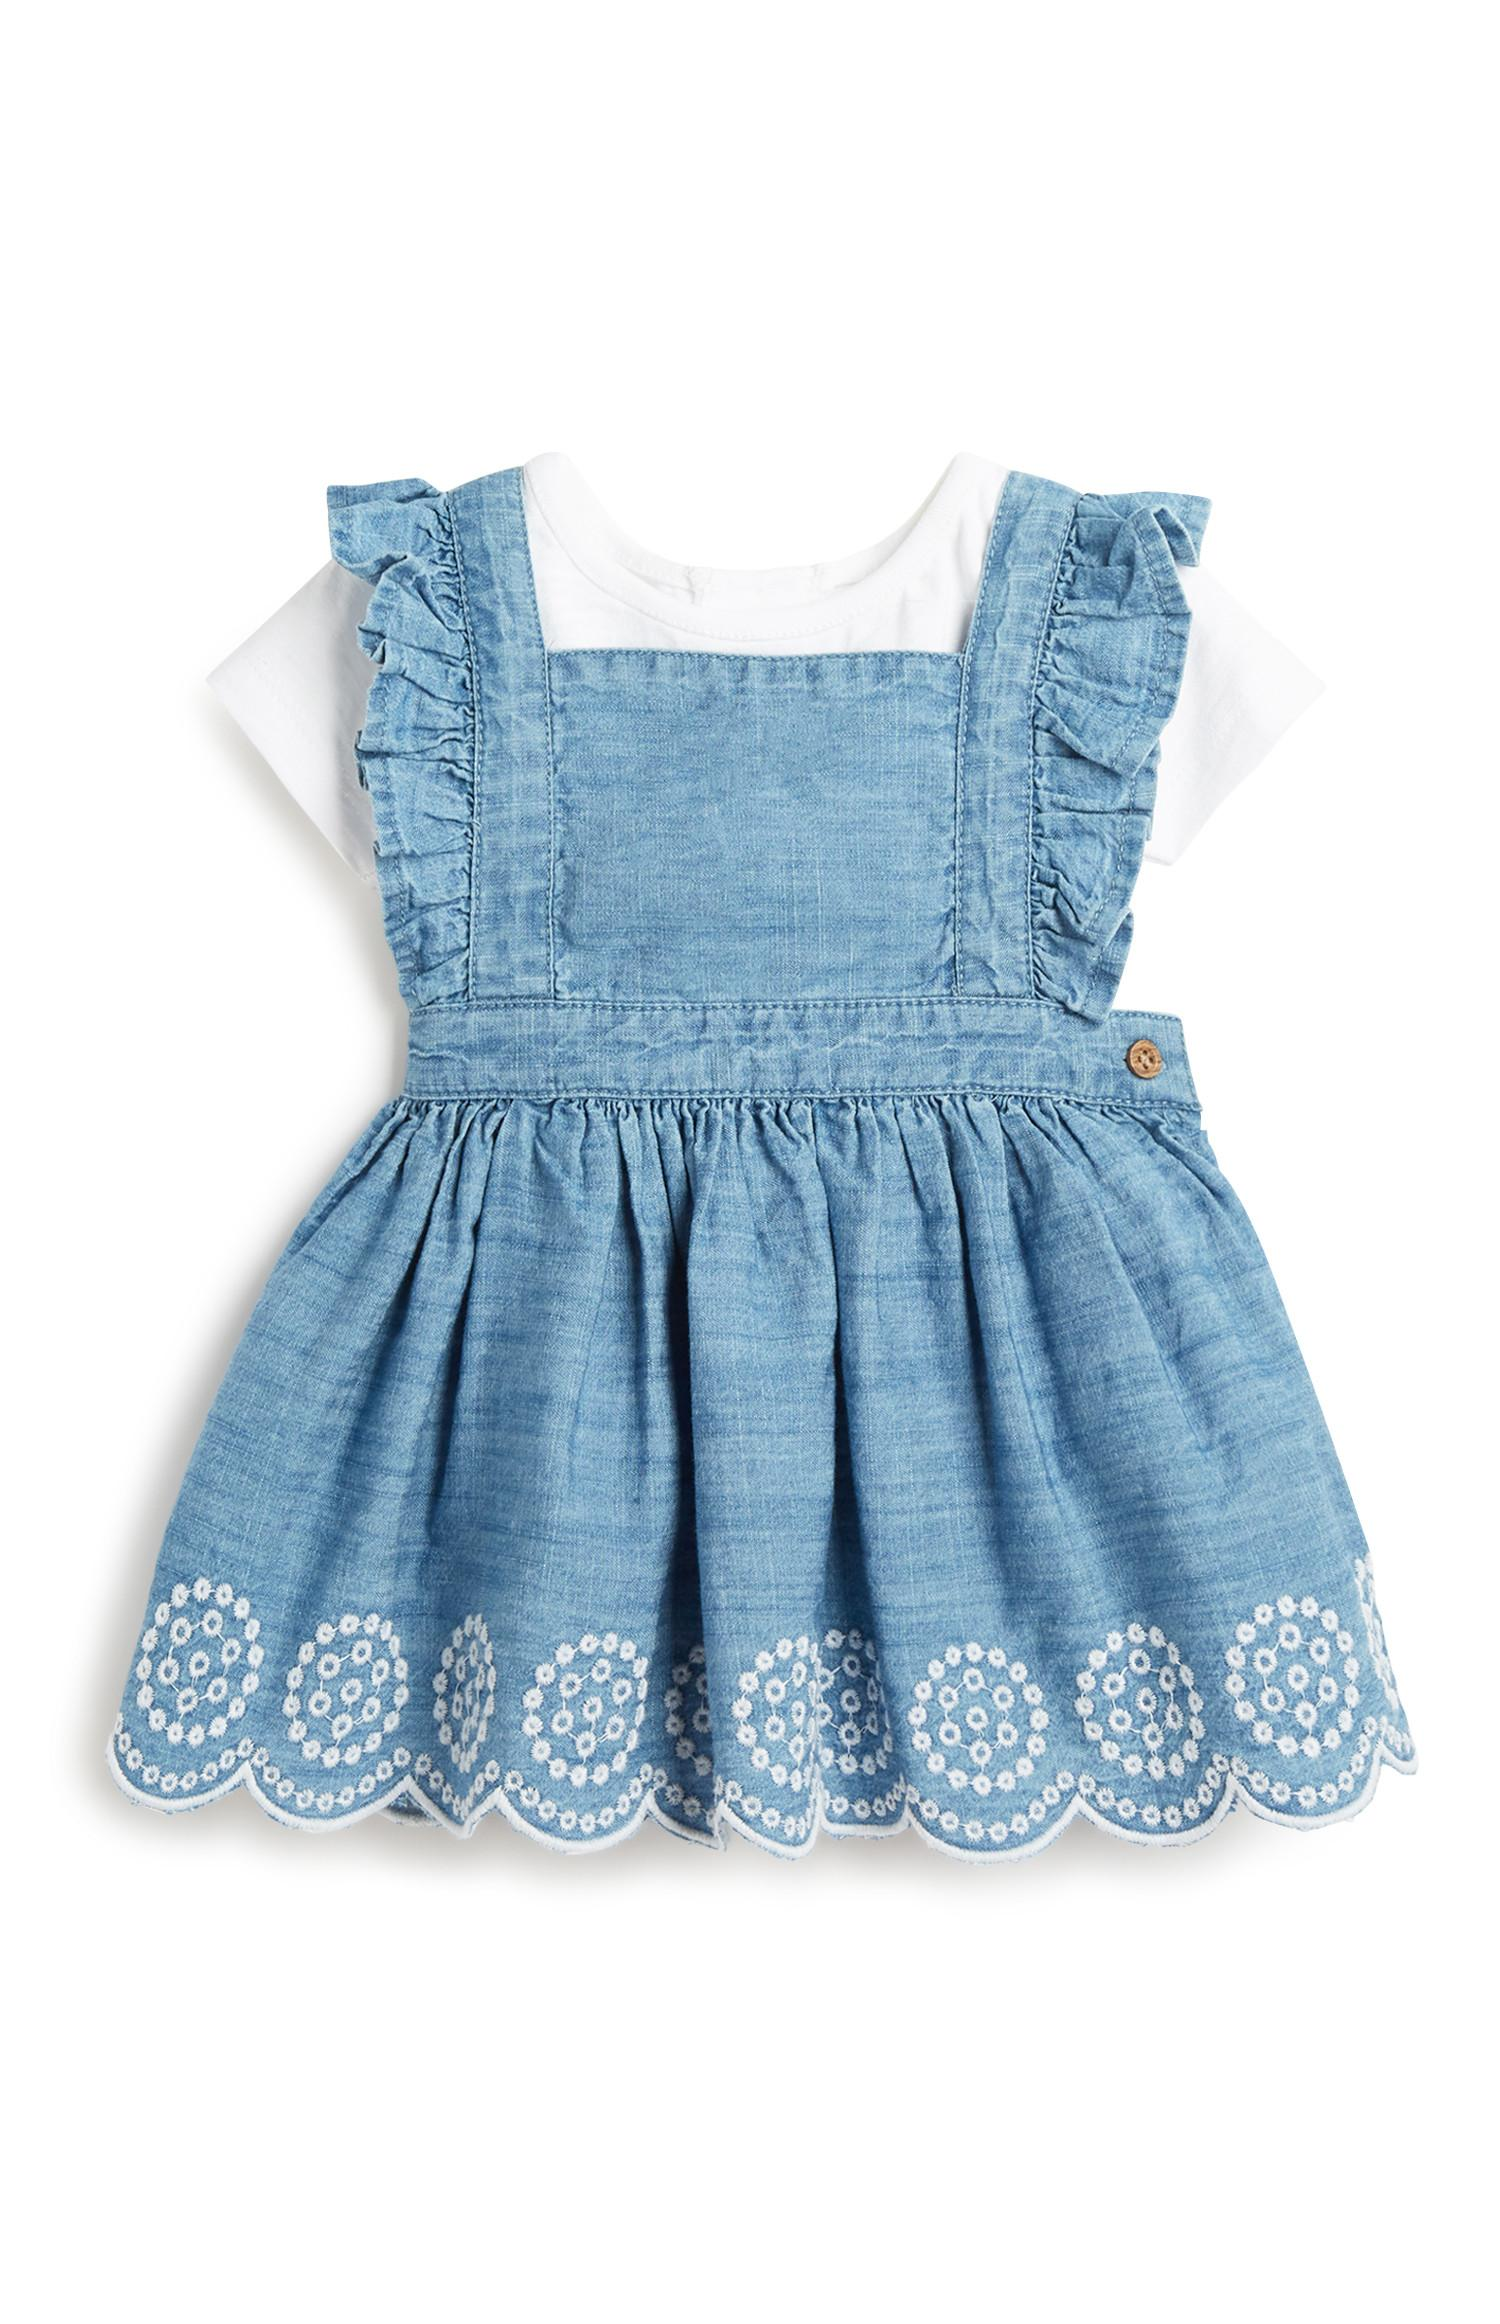 Baby Girl Denim Dress Outfit